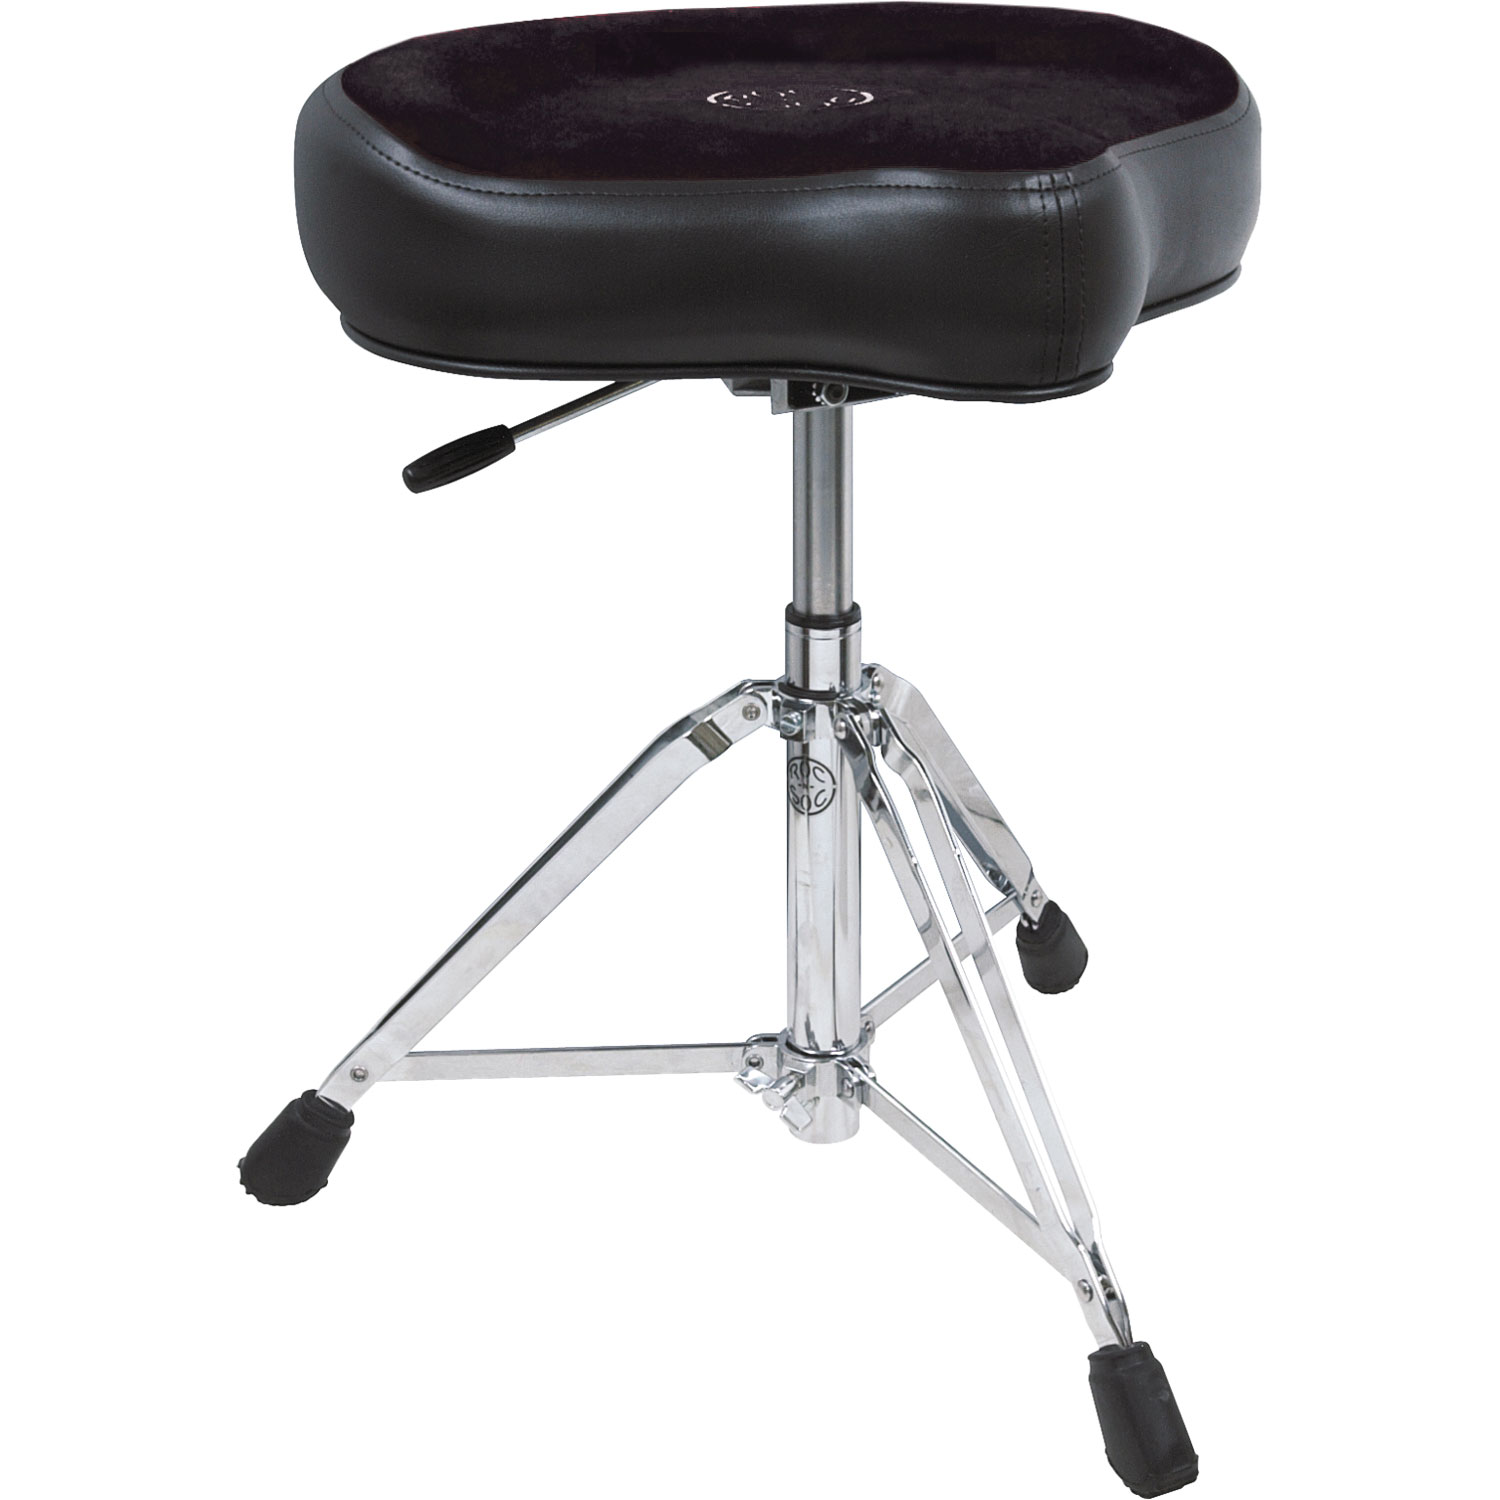 Roc-n-Soc Nitro Extended Timpani/Drum Throne with Original Seat & Back Rest in Black